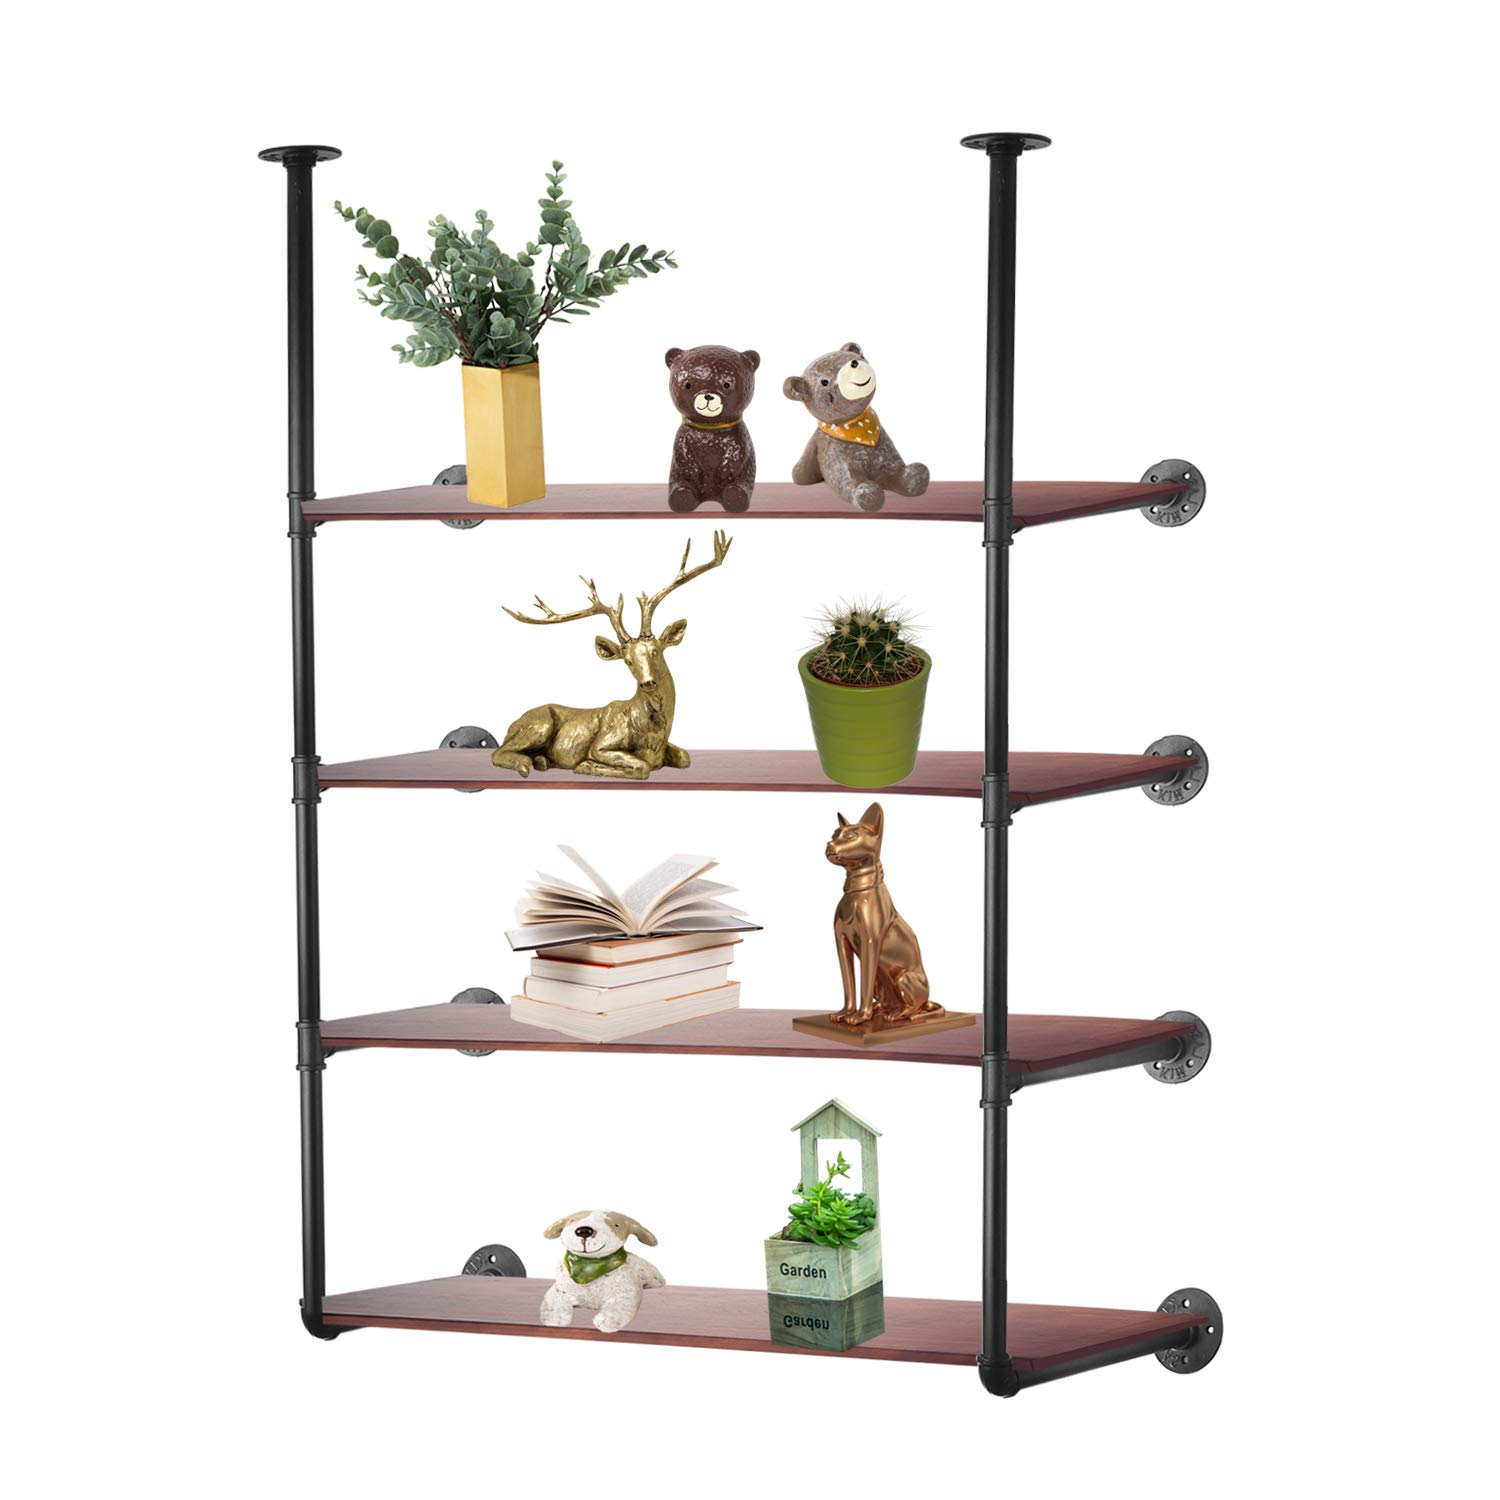 3S Industrial Pipe Shelving, Rustic Iron Pipe Shelf Wall Mount Bookshelf Shelving Unit,Mounted Bracket,DIY Support,No Planks(2 pcs),Black.